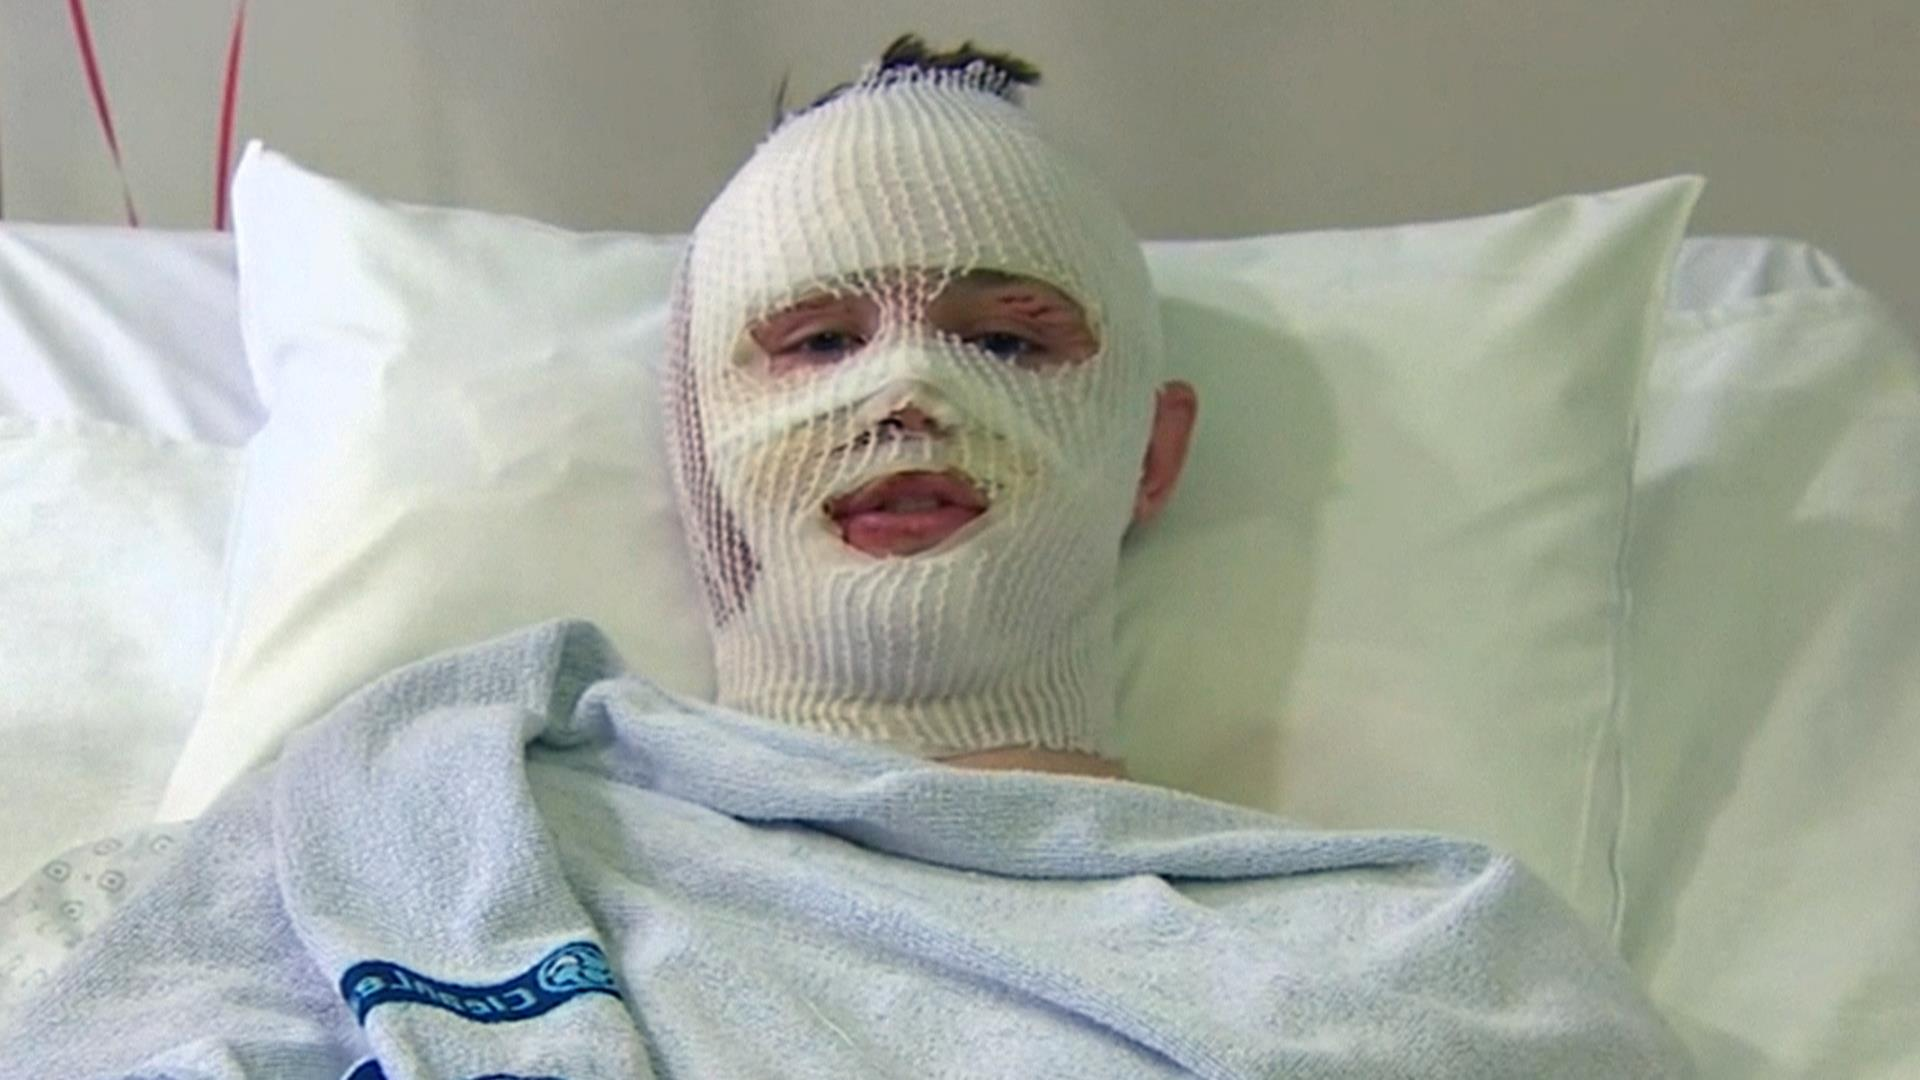 American Teen Recounts Surviving His Second Terror Attack in Brussels